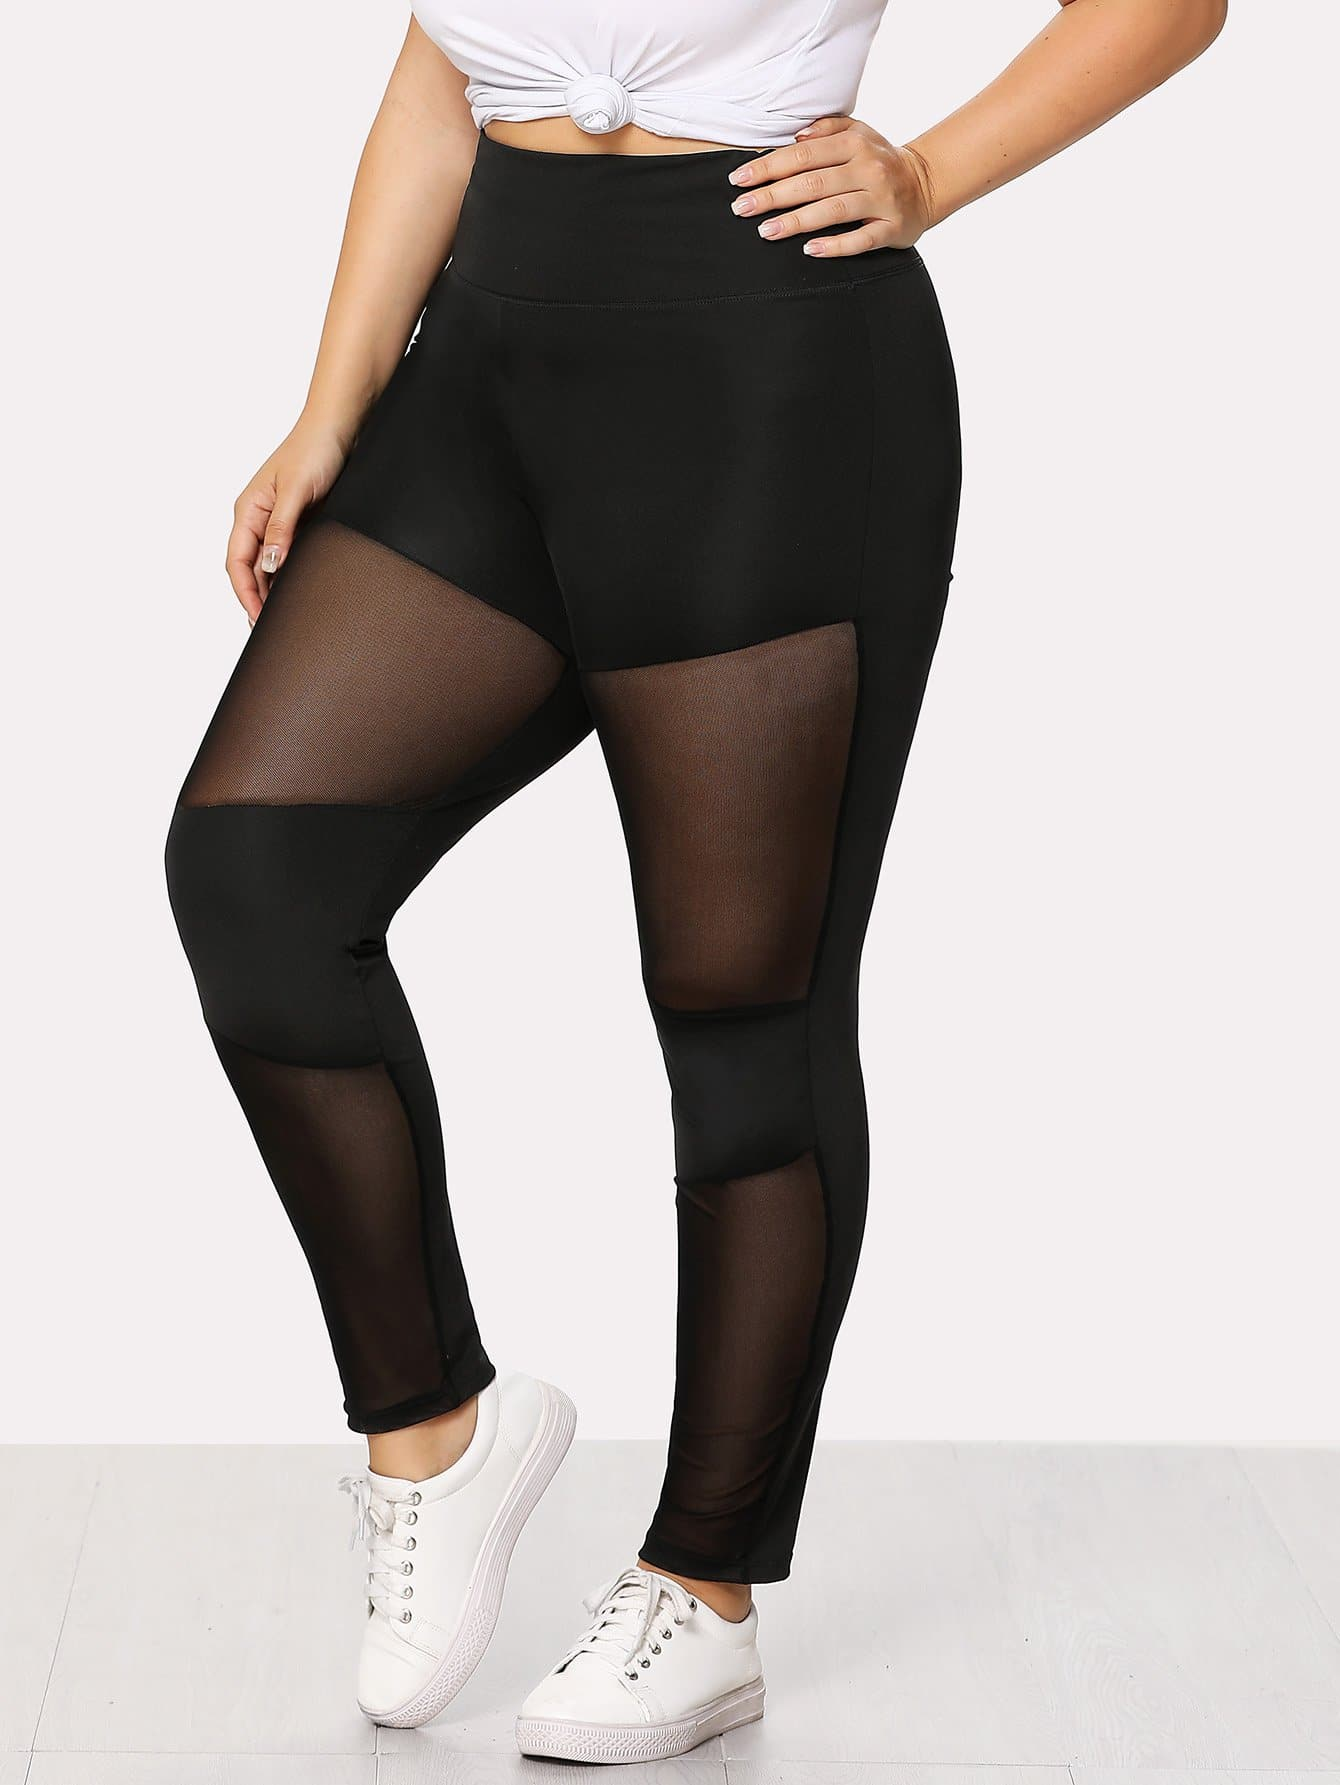 Sheer Mesh Panel Skinny Leggings sheer plus size mesh panel workout leggings